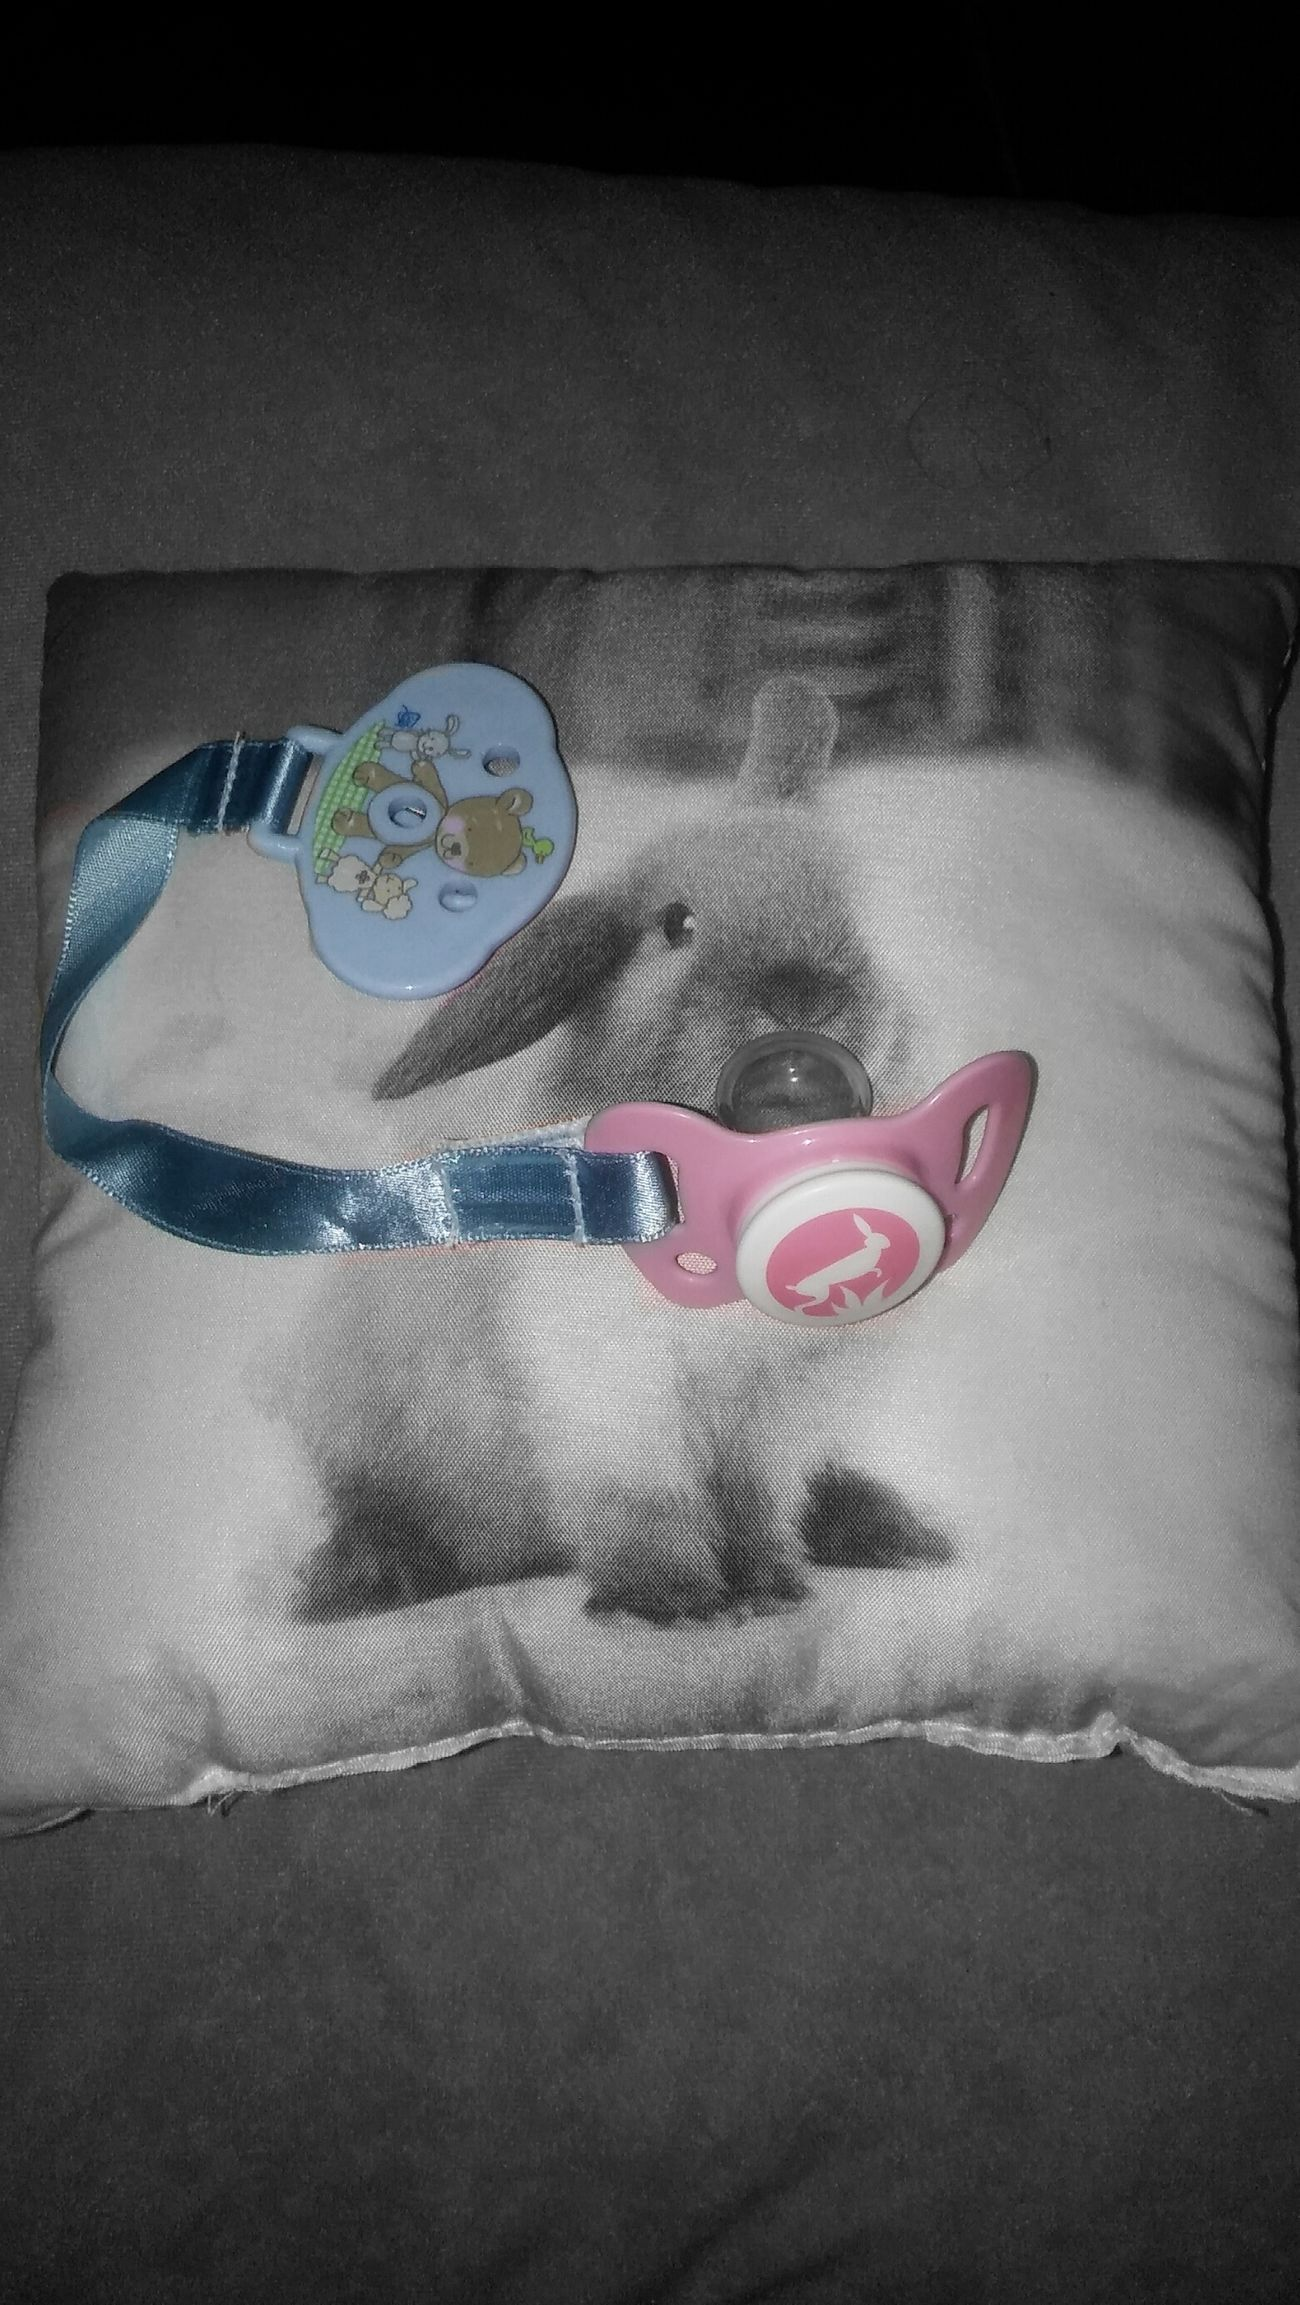 Babyblue Babypink Bunny  Pacifier Ddlg Pillow Littlespace Daddykink Daddydom Adultplay Pastel No People First Eyeem Photo